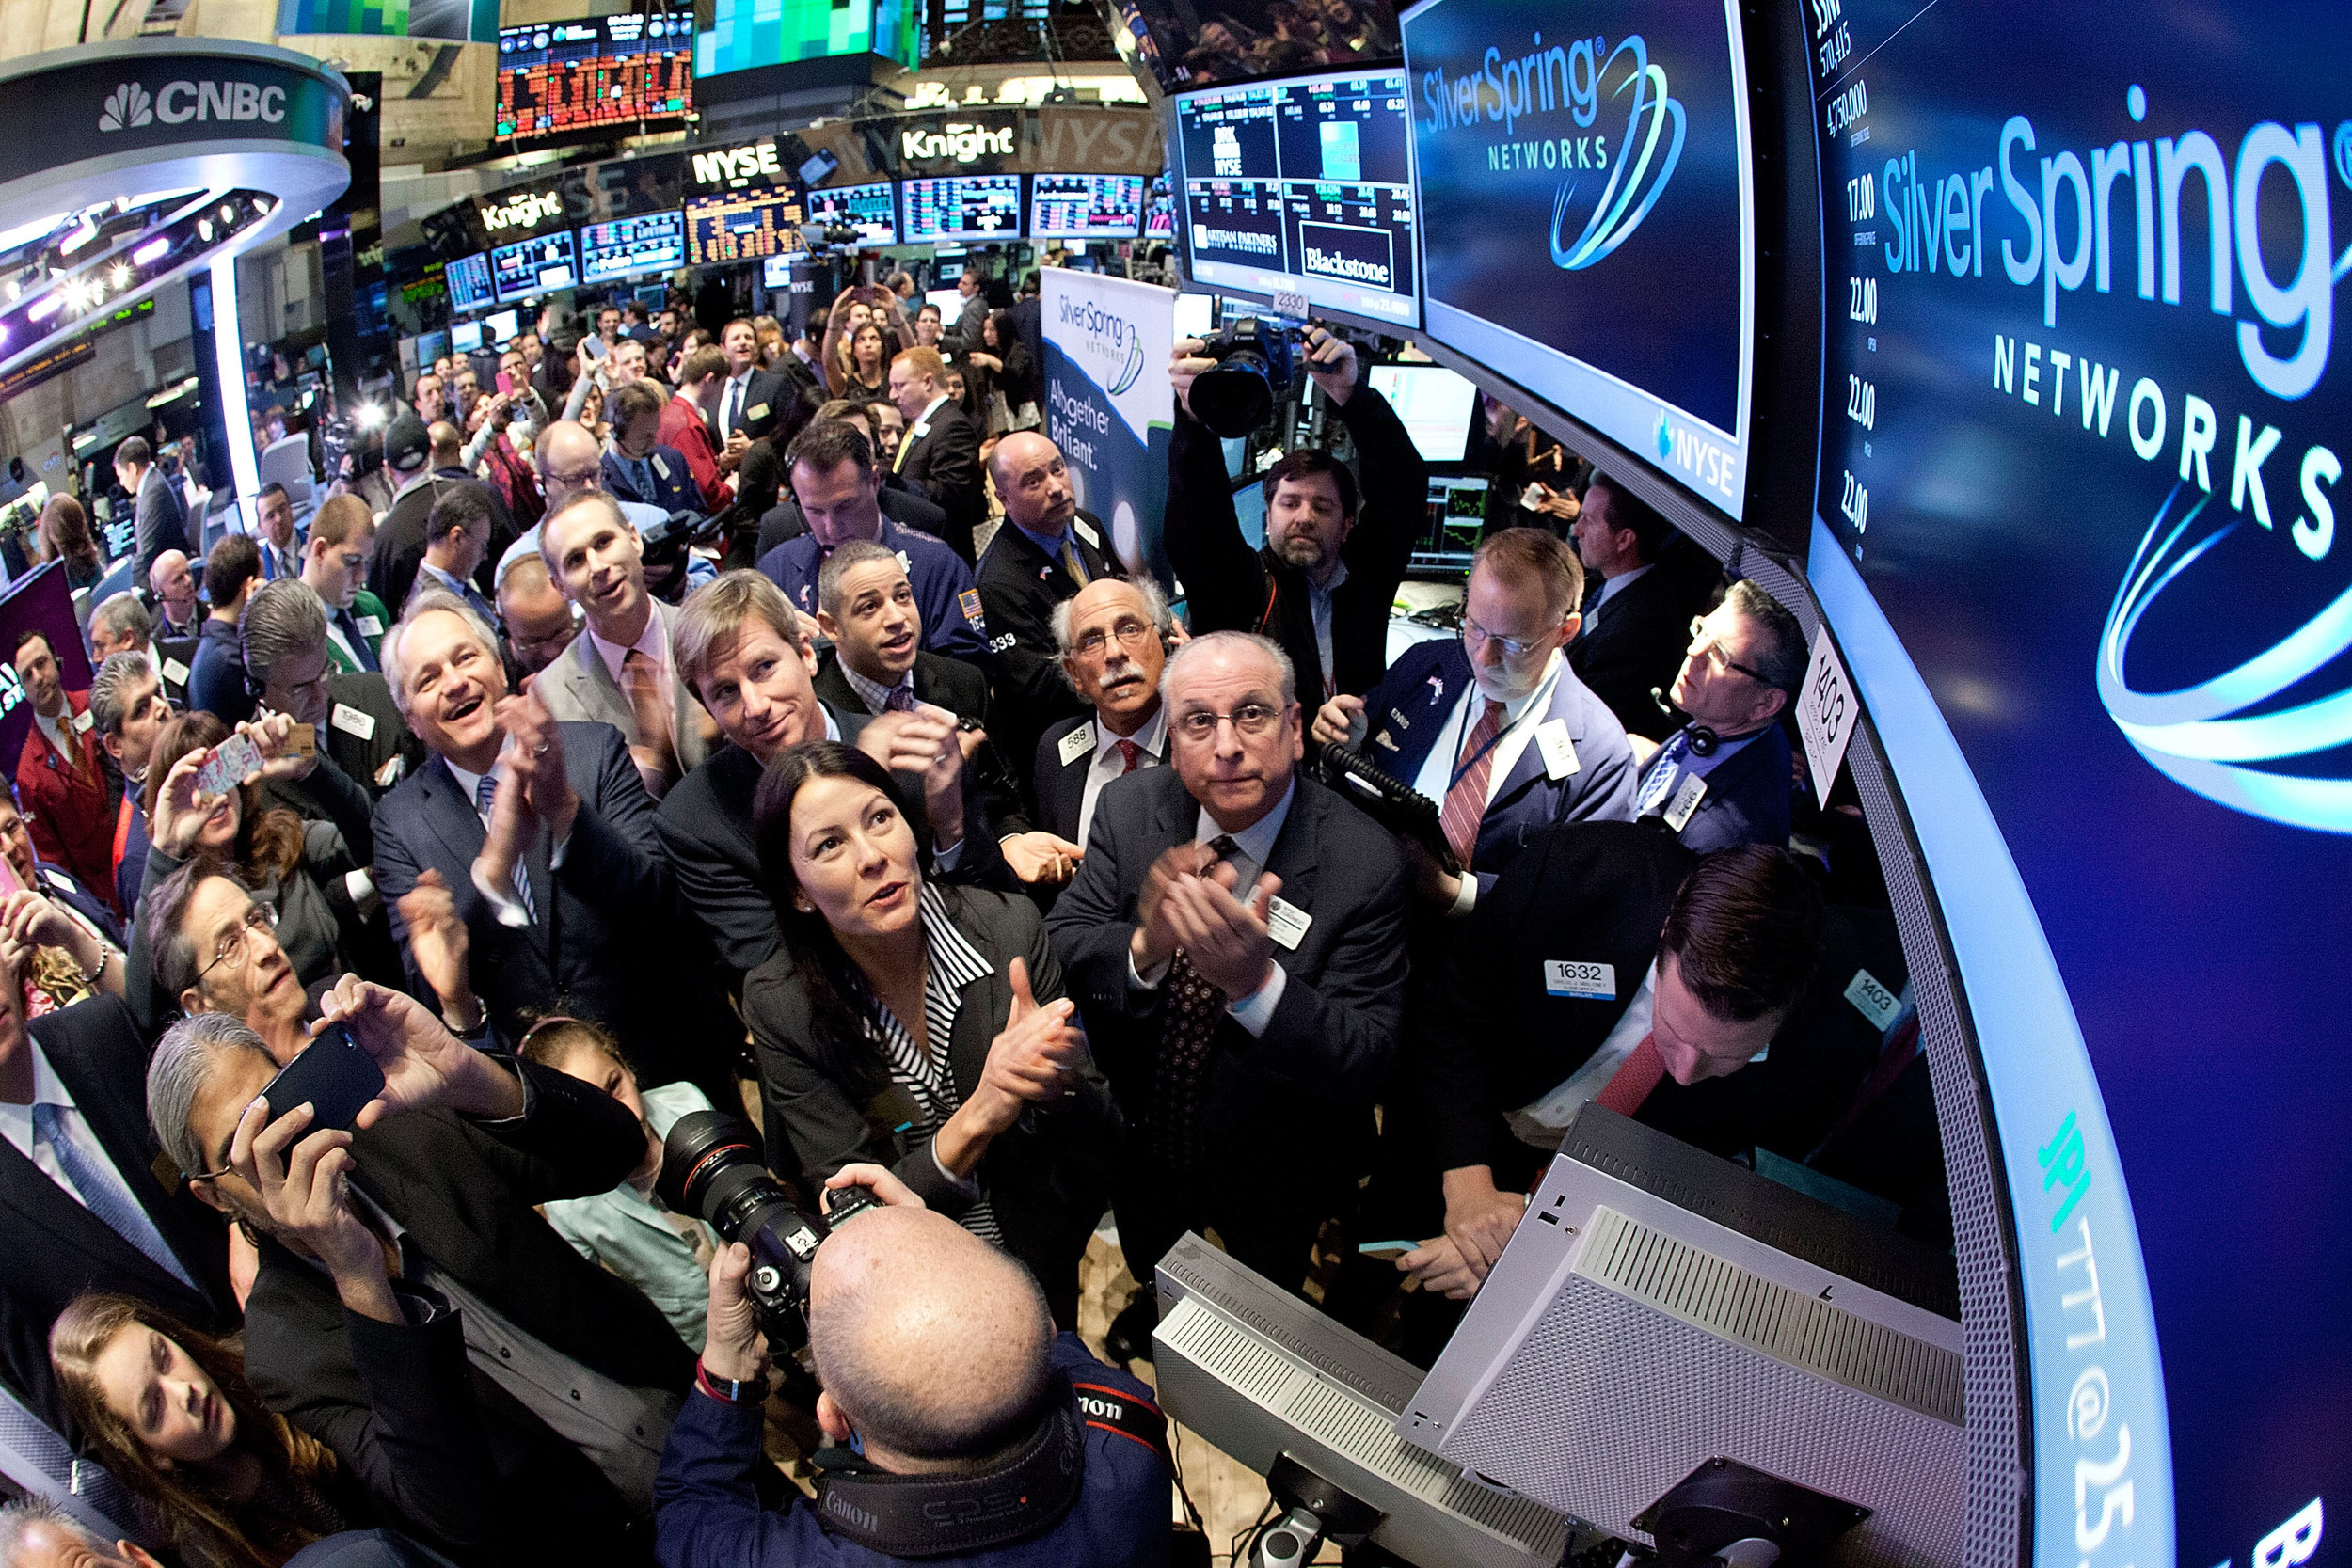 http://www1.nyse.com/images/about/SilverSpringsfirsttrade.jpg